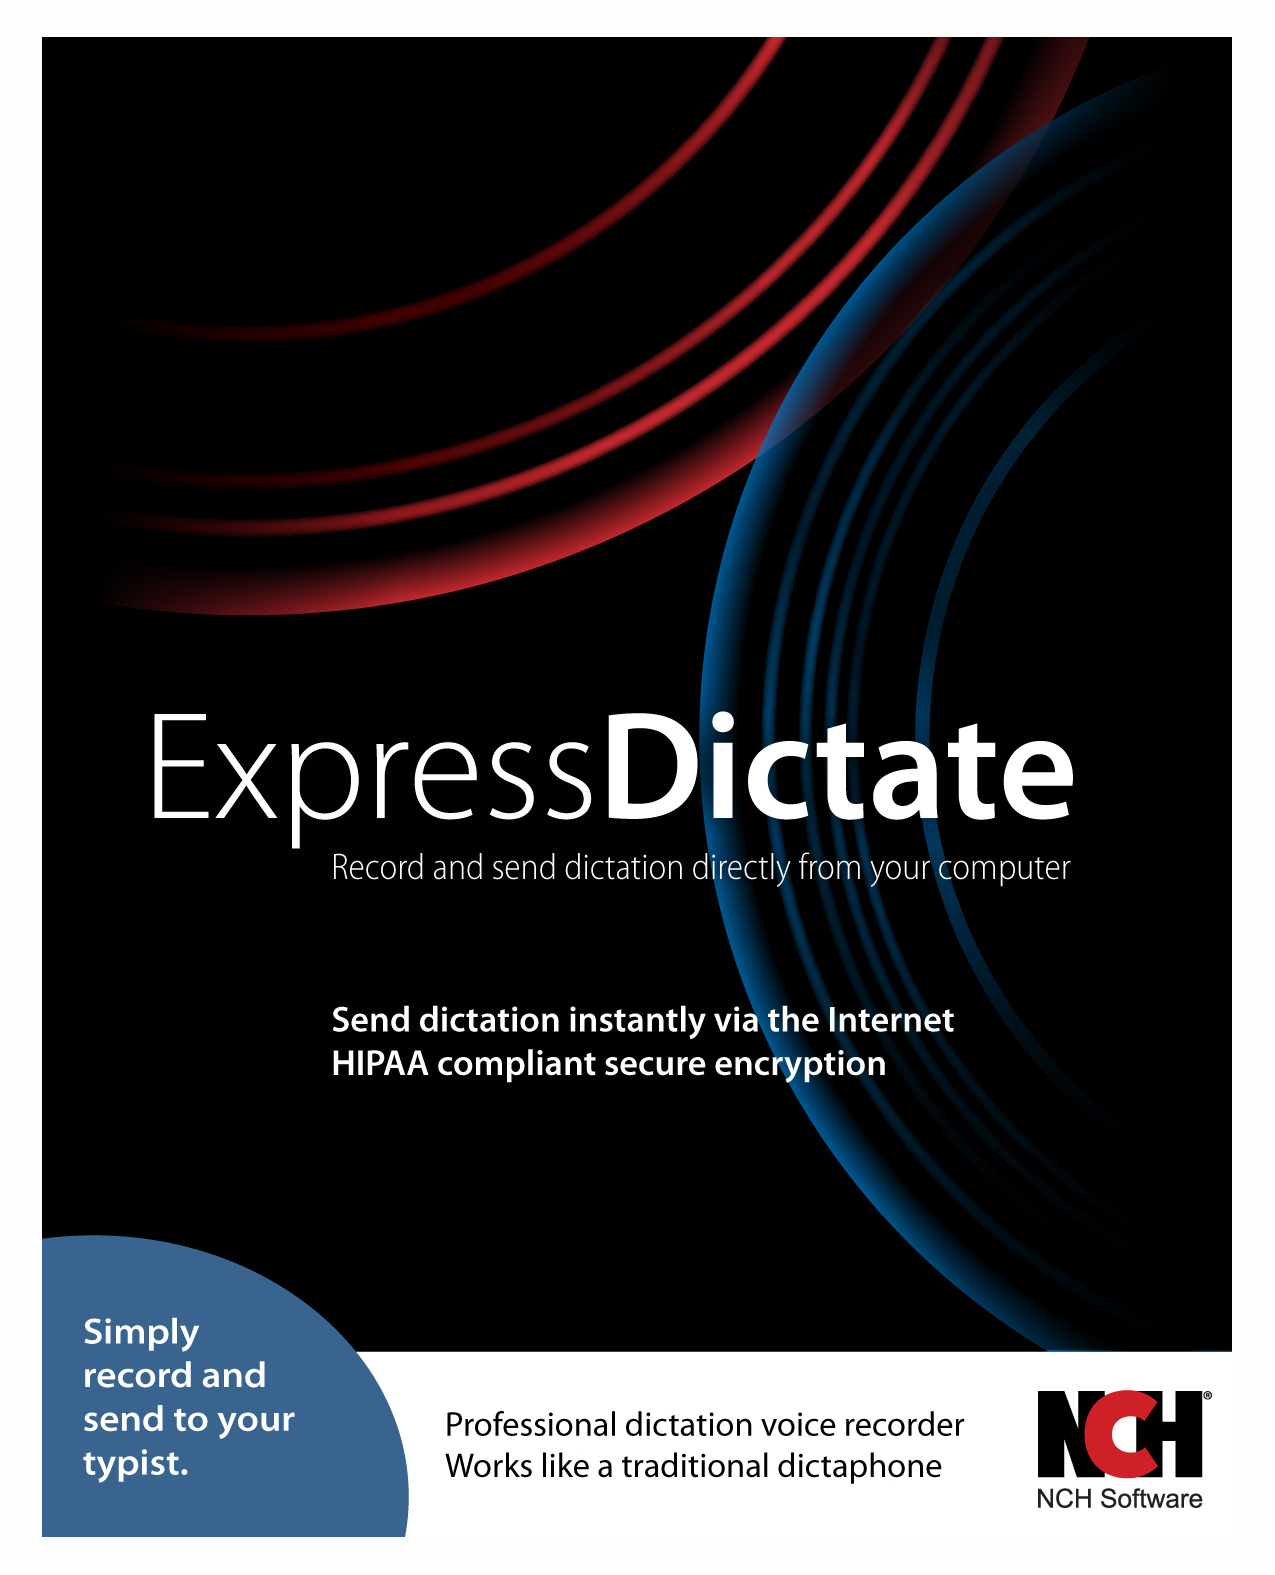 (Express Dictate Digital Dictation Software - Record and Send Dictation to Typist [Download])